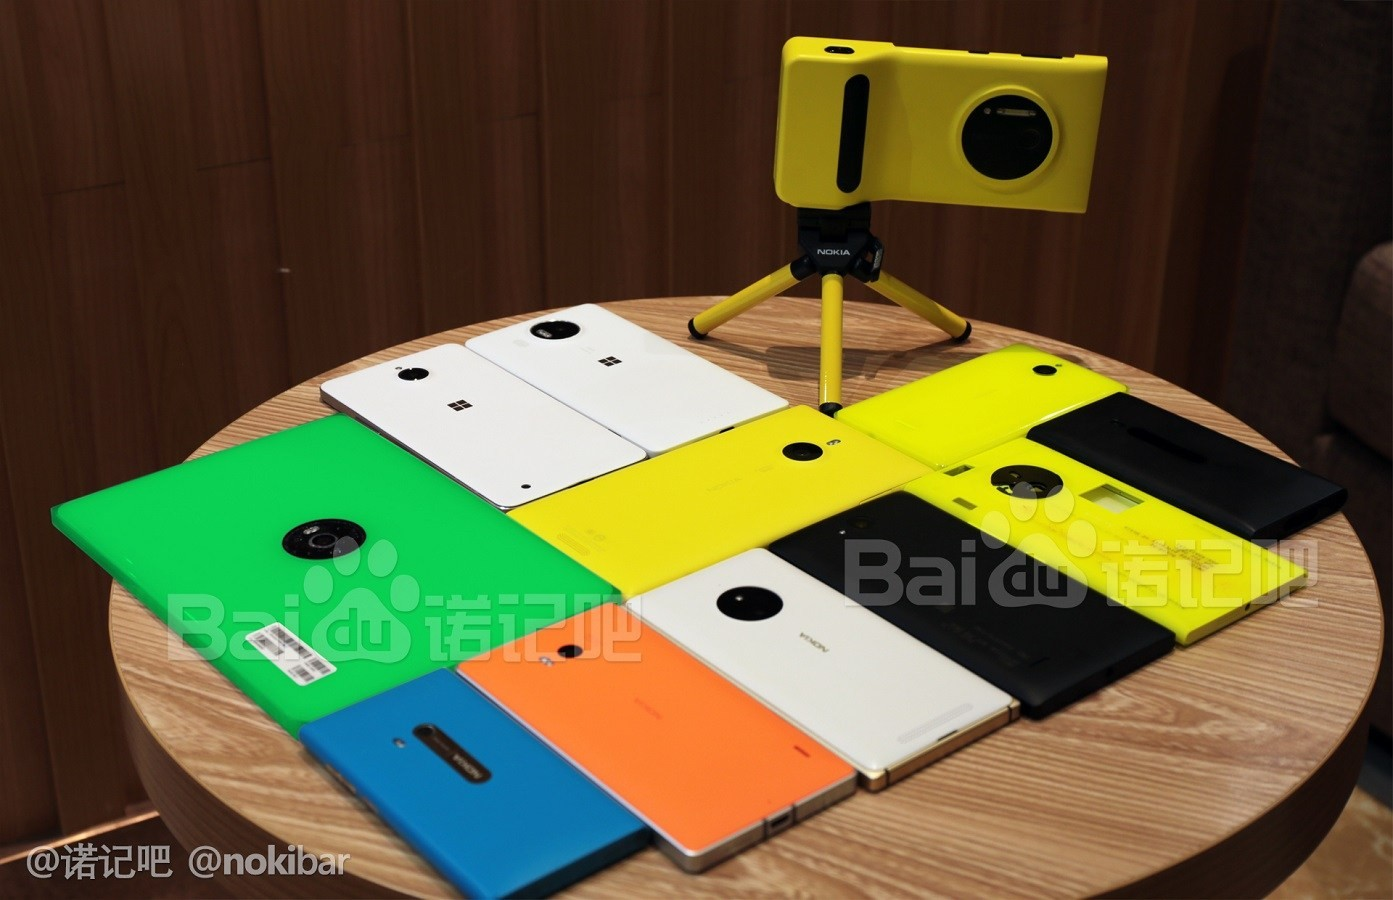 leaked-photo-shows-canceled-microsoft-phones-and-nokia-2020-windows-rt-tablet-506589-2